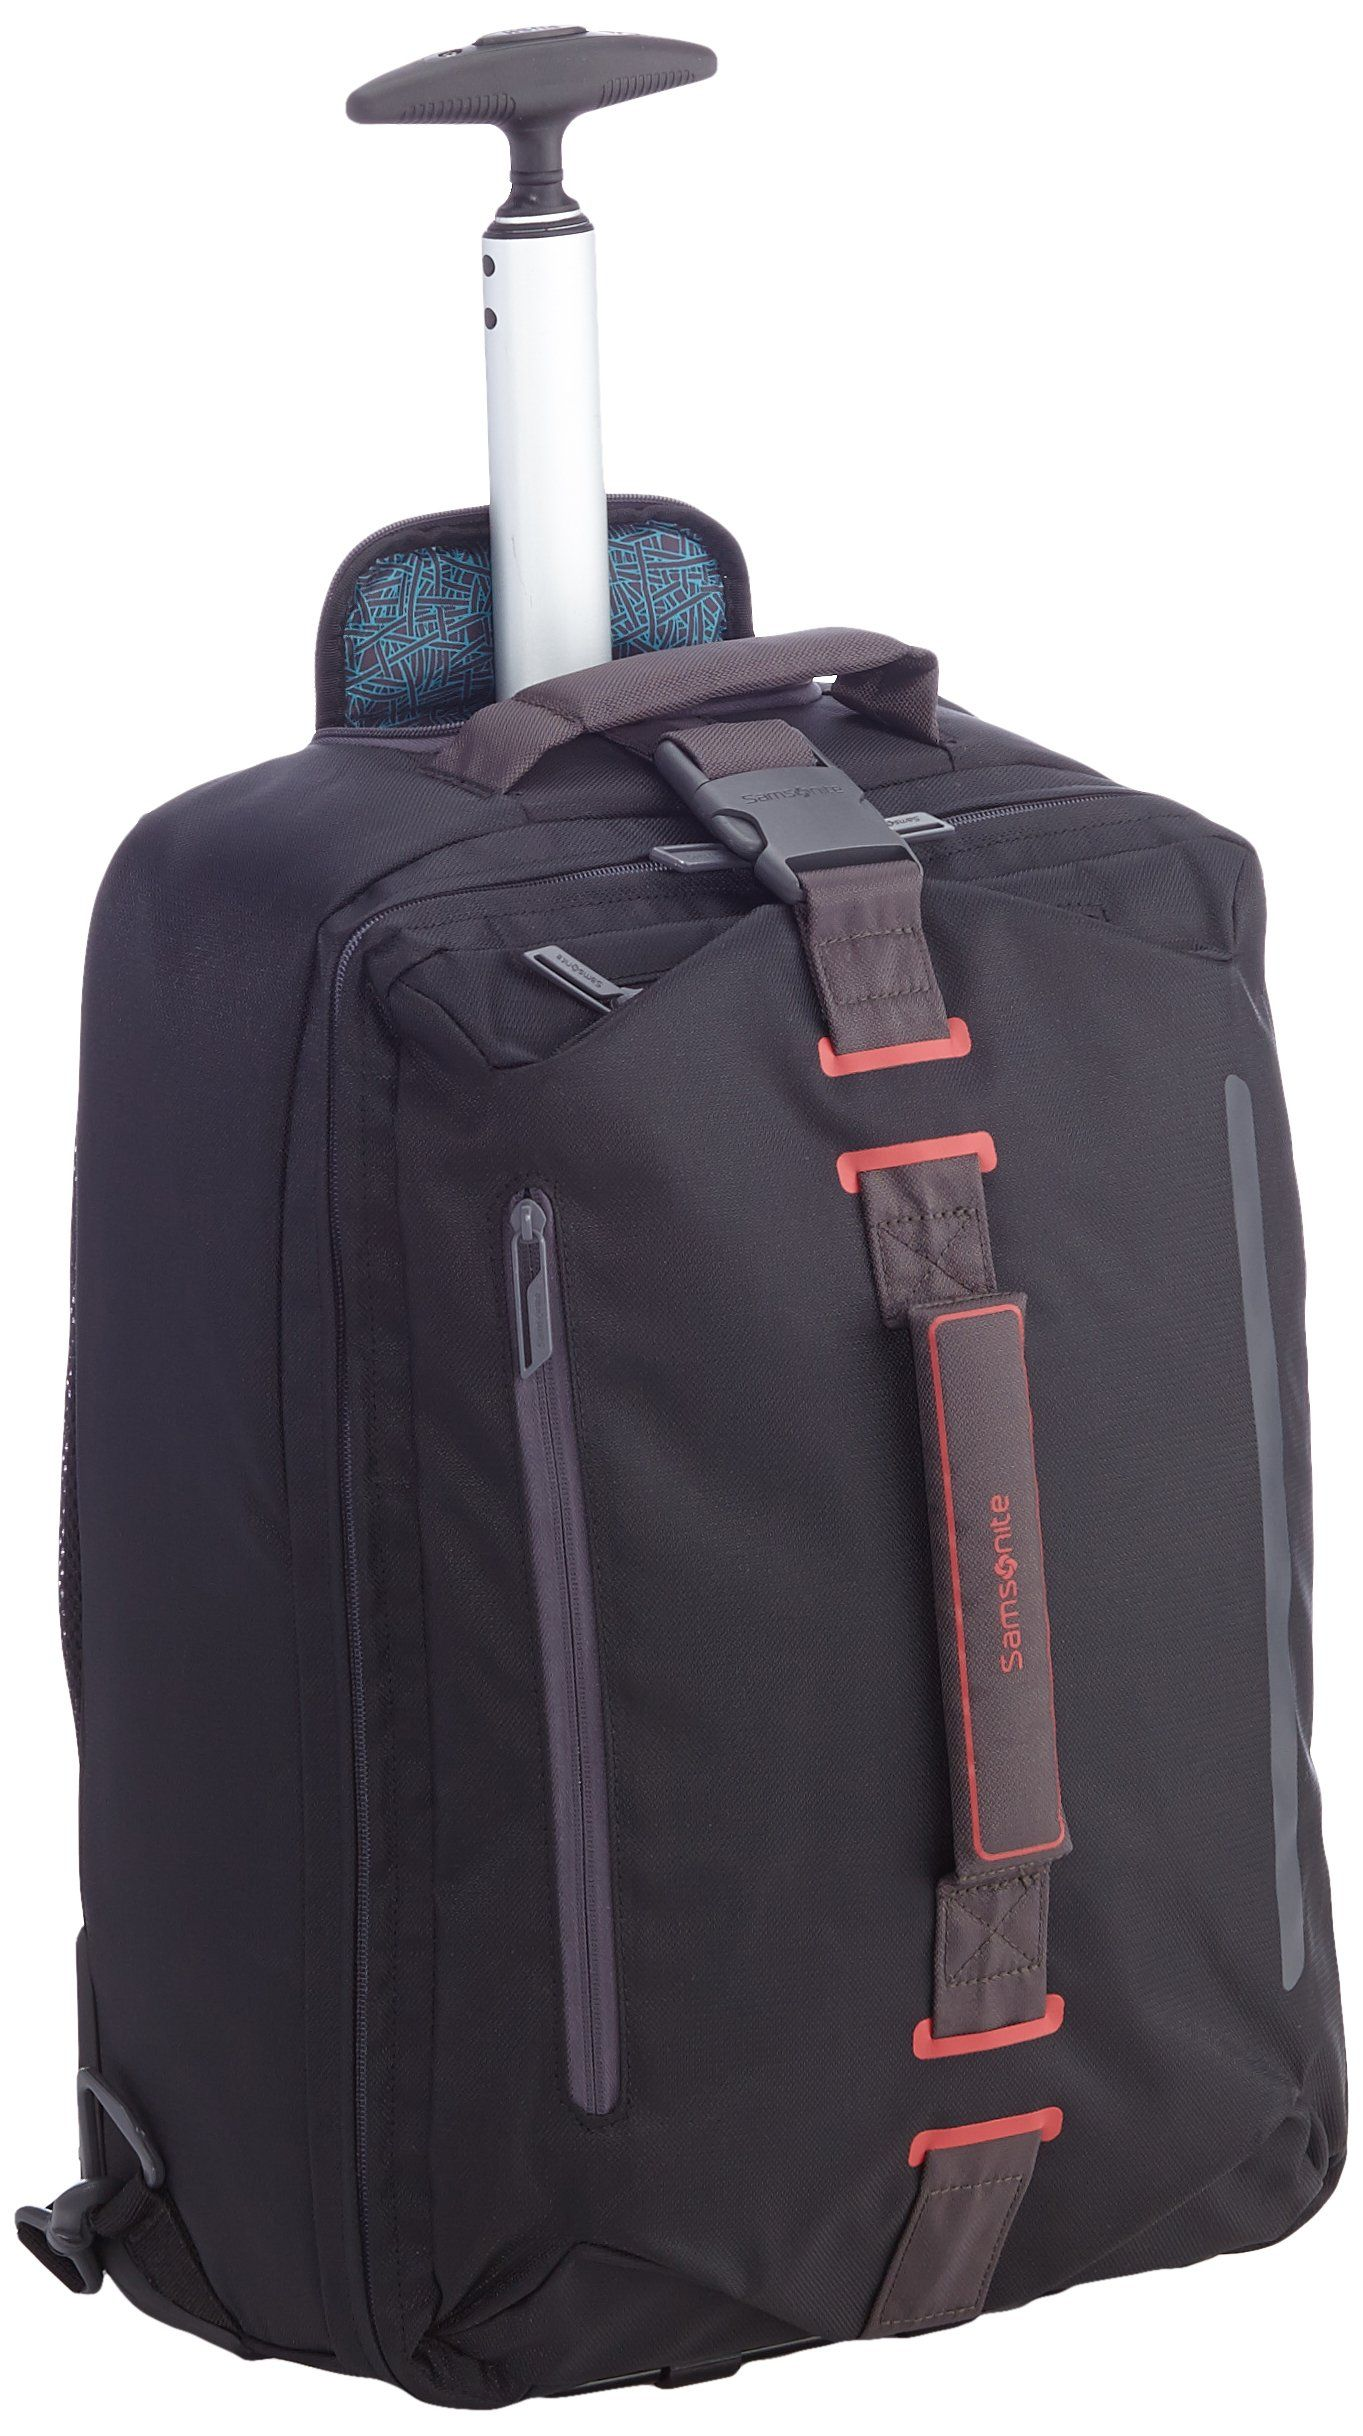 Devoted Travel Tale 16 Small Hand Suitcase Cabin Baggage Trolley Carry On Travel Luggage Bag For Travel Luggage & Bags